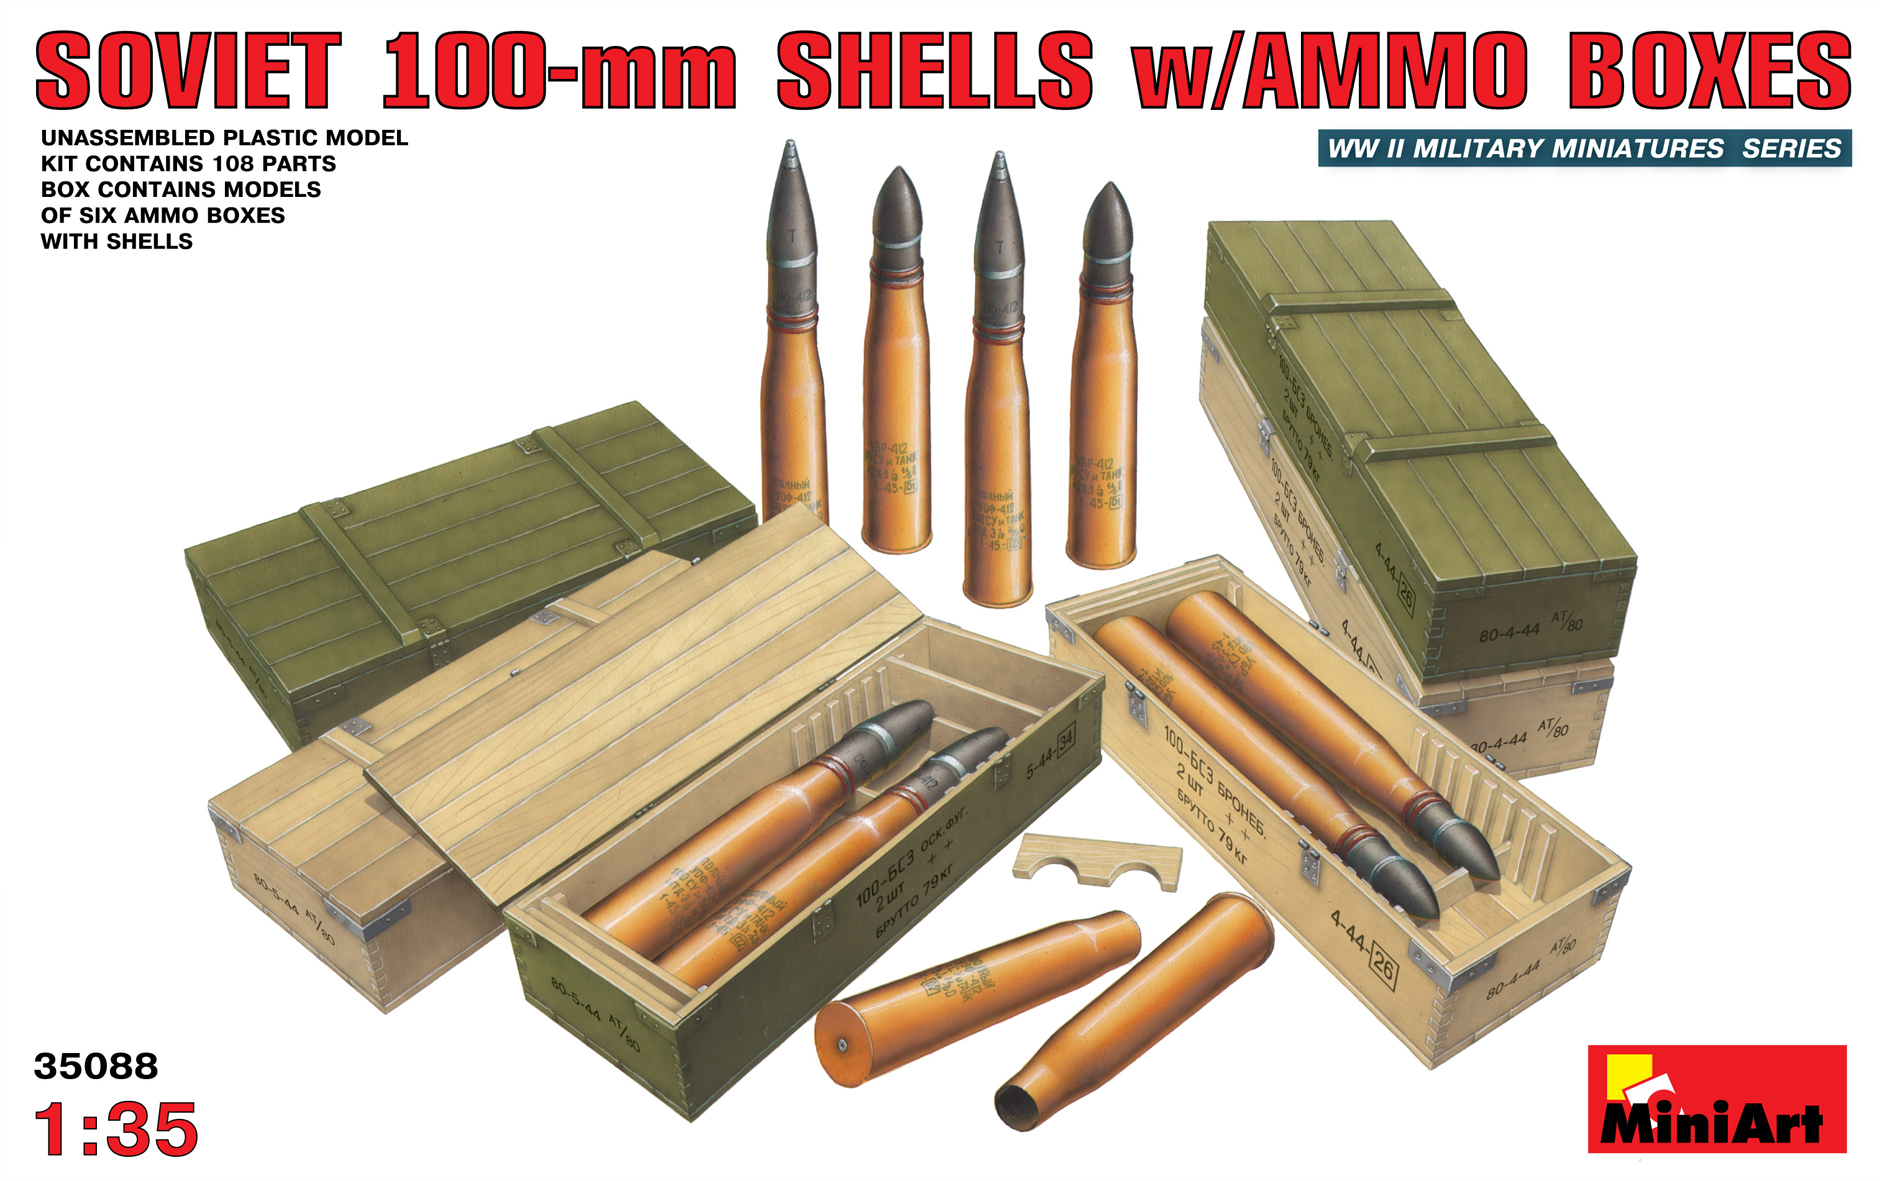 35088 SOVIET 100-mm SHELLS w/AMMO BOXES